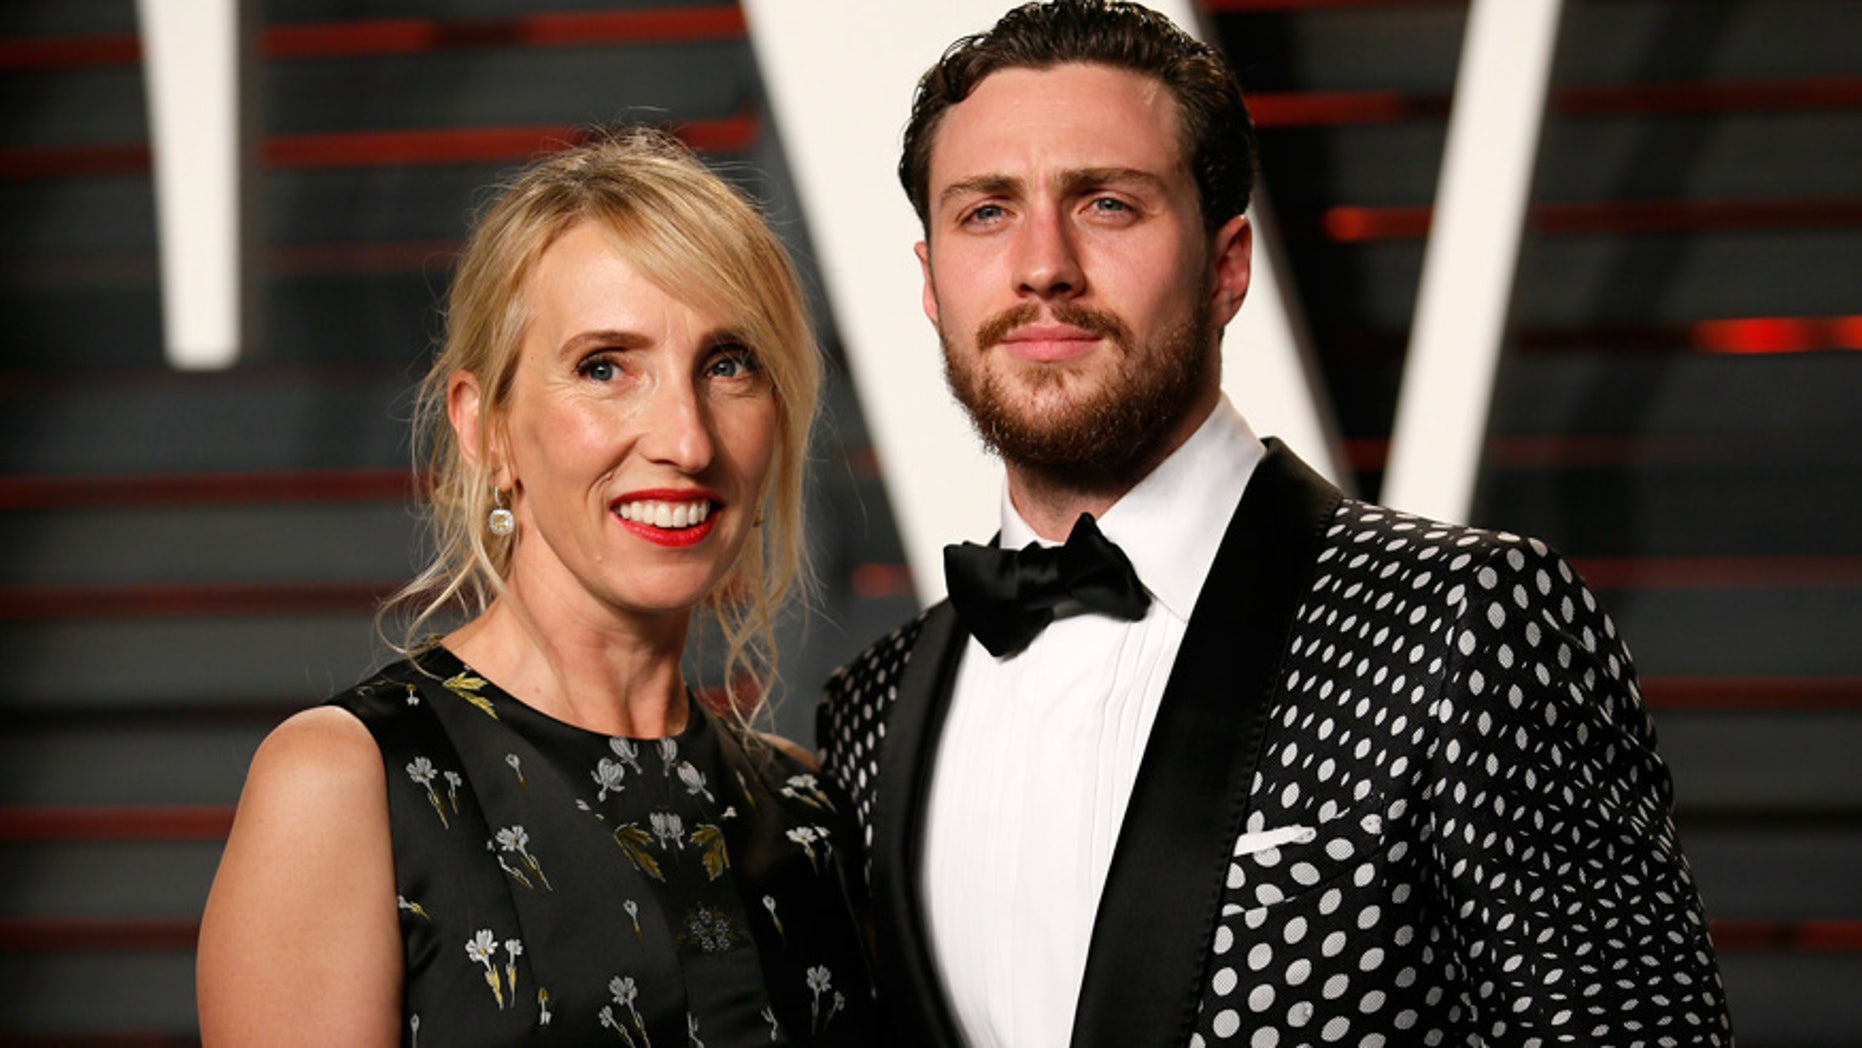 e676bbbc2bcef 'Fifty Shades of Grey' director Sam Taylor-Johnson gets candid about being  married to a 27-year-old